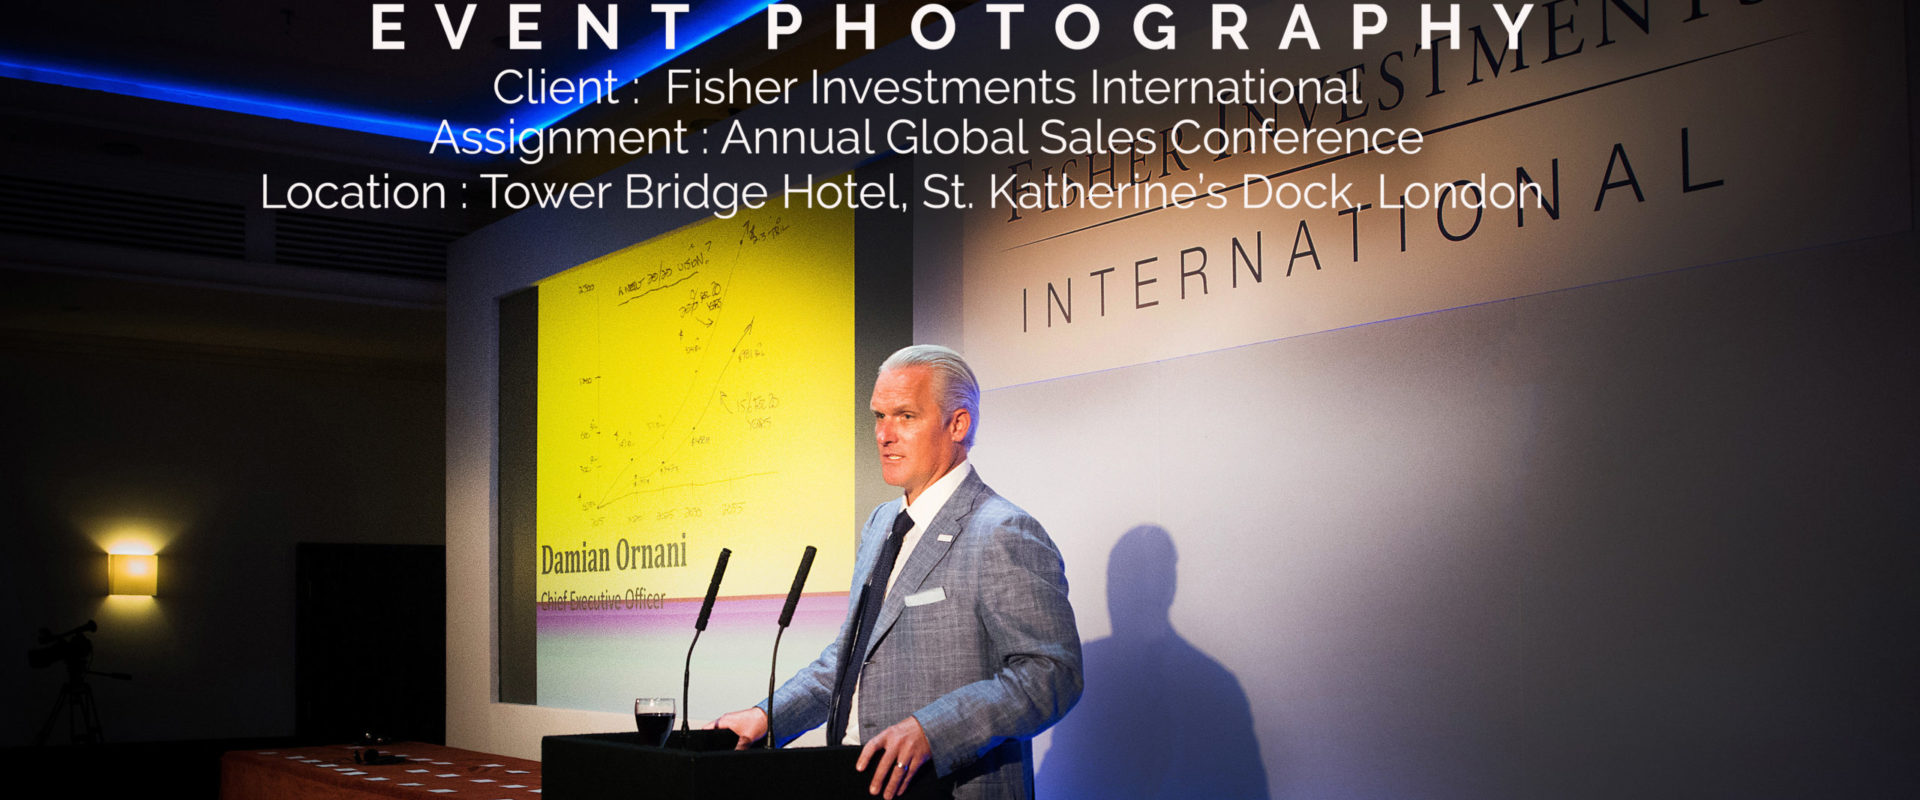 PHOTOGRAPHY OF FINANCIAL COMPANY EVENT & CONFERENCE